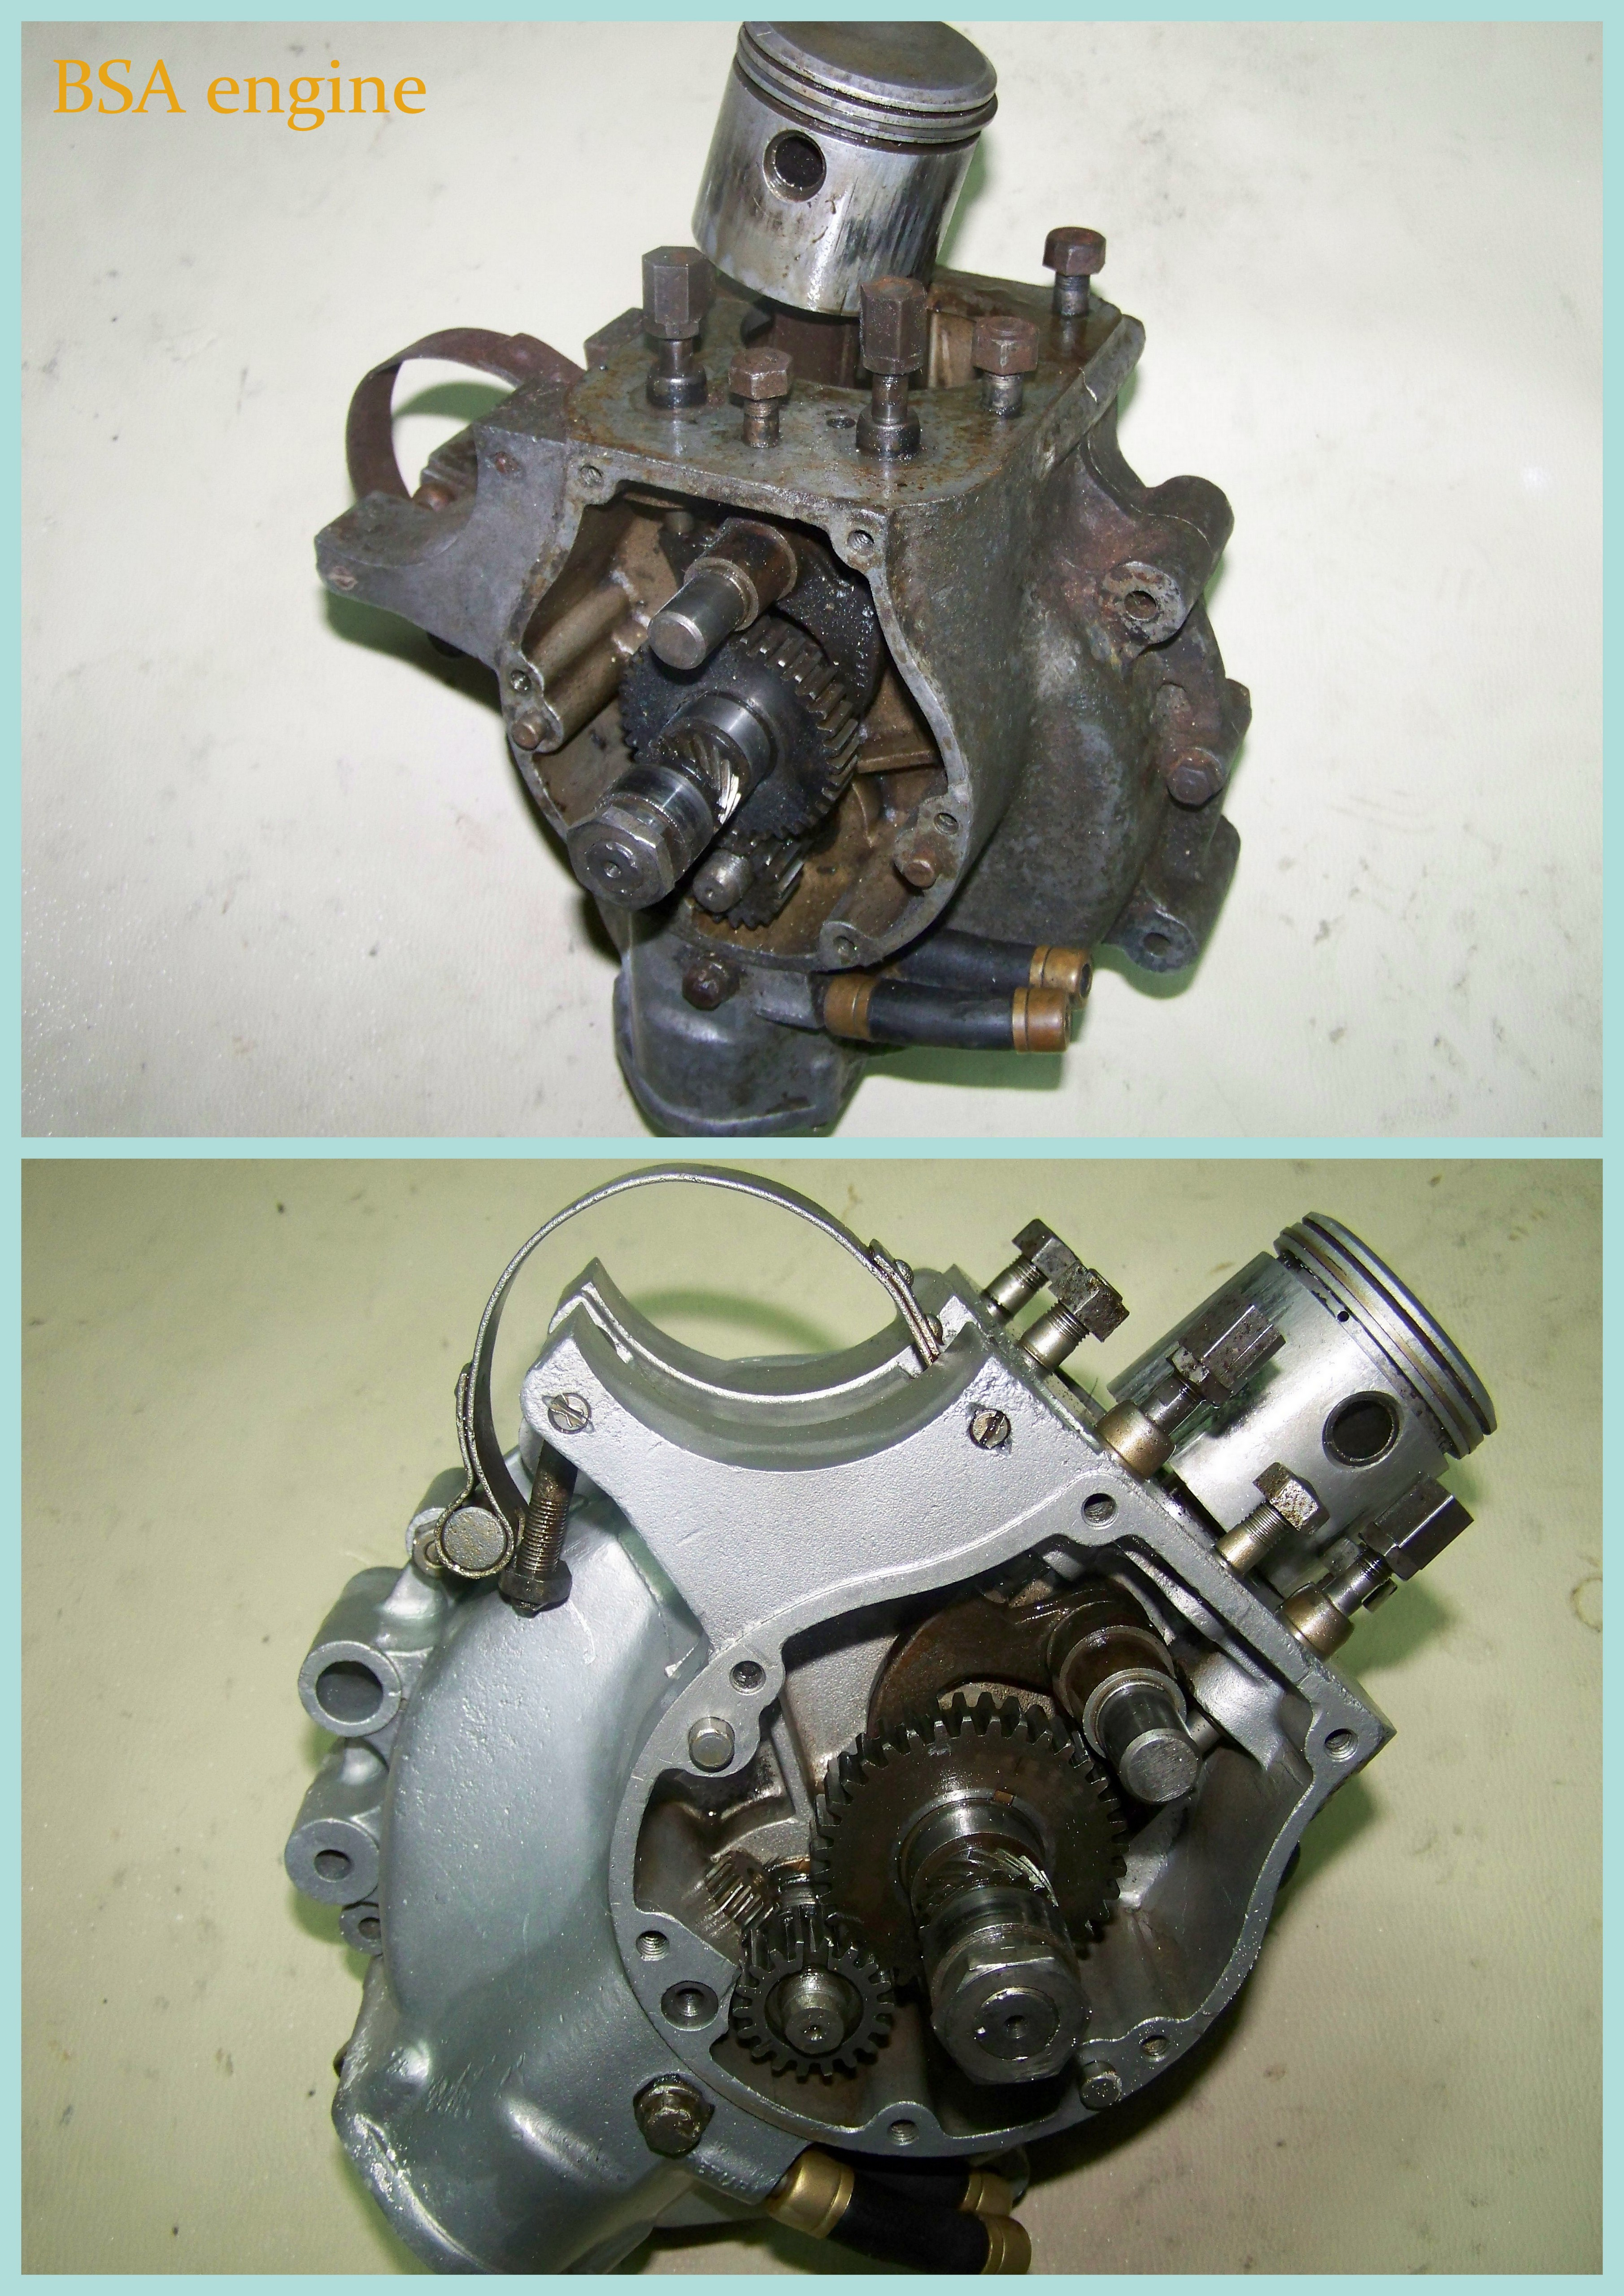 BSA engine